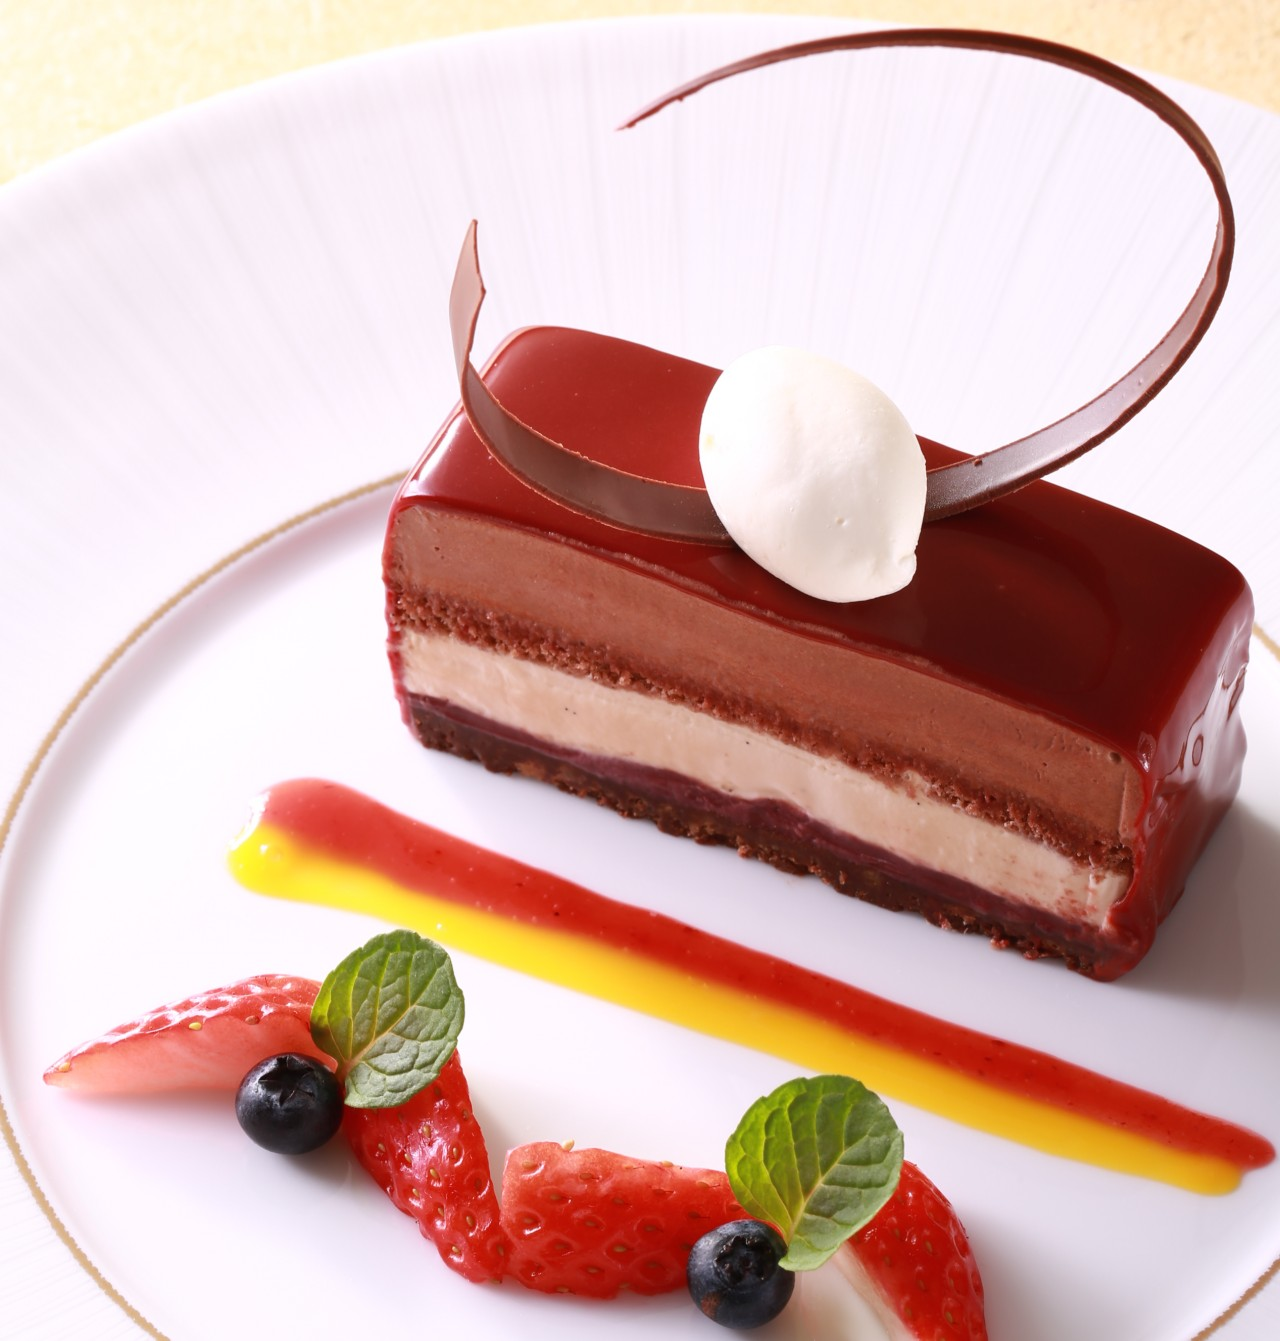 Scenery's Monthly Dessert Collection